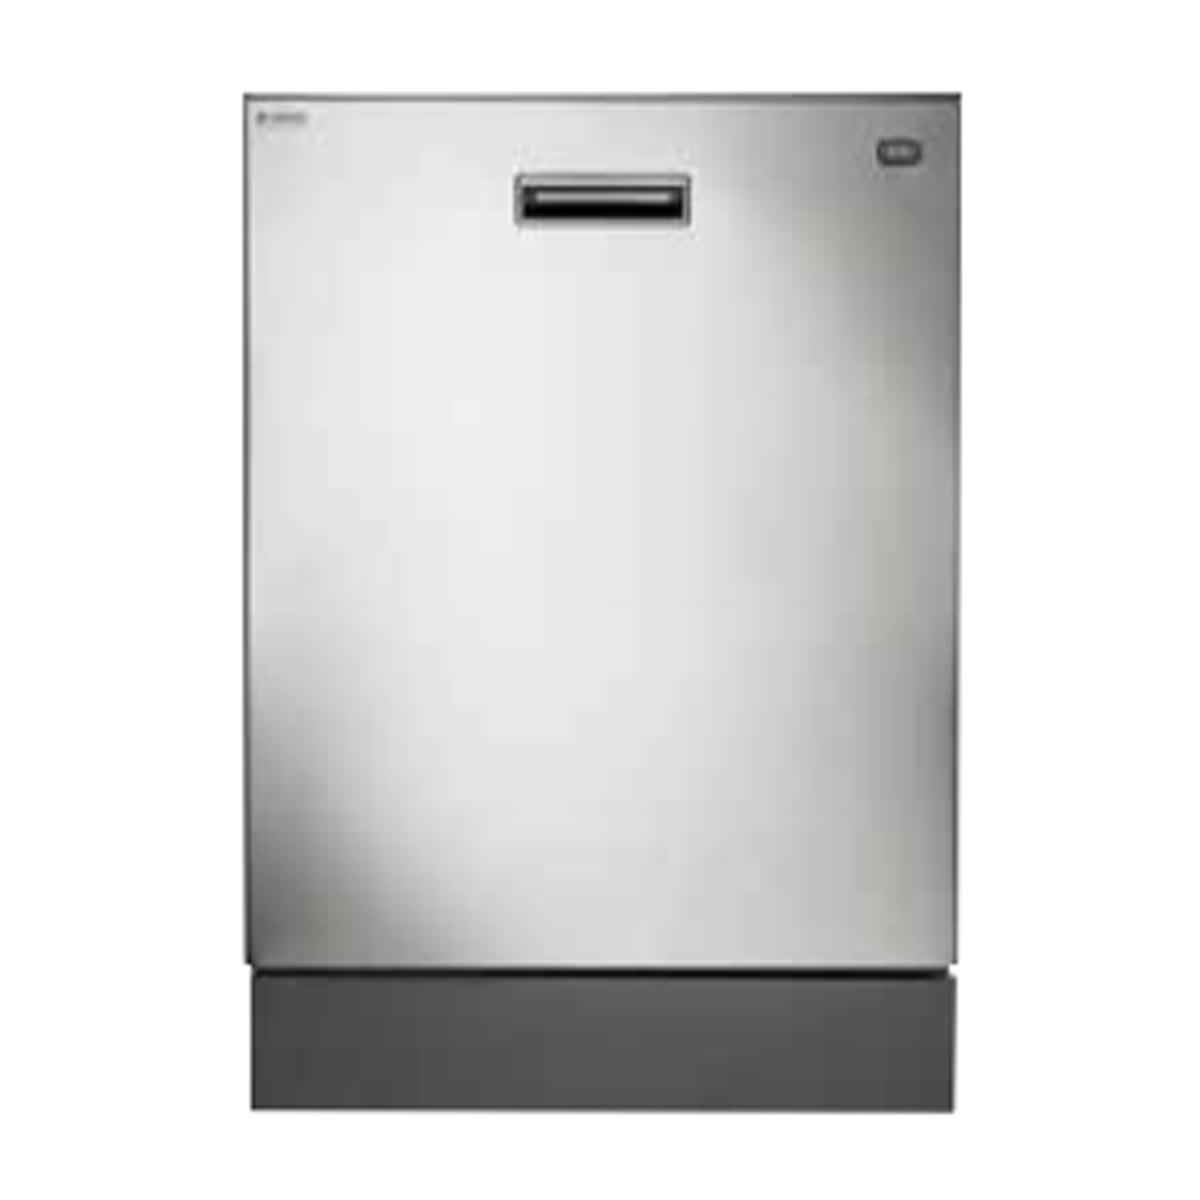 Asko DWC5926 Dishwasher